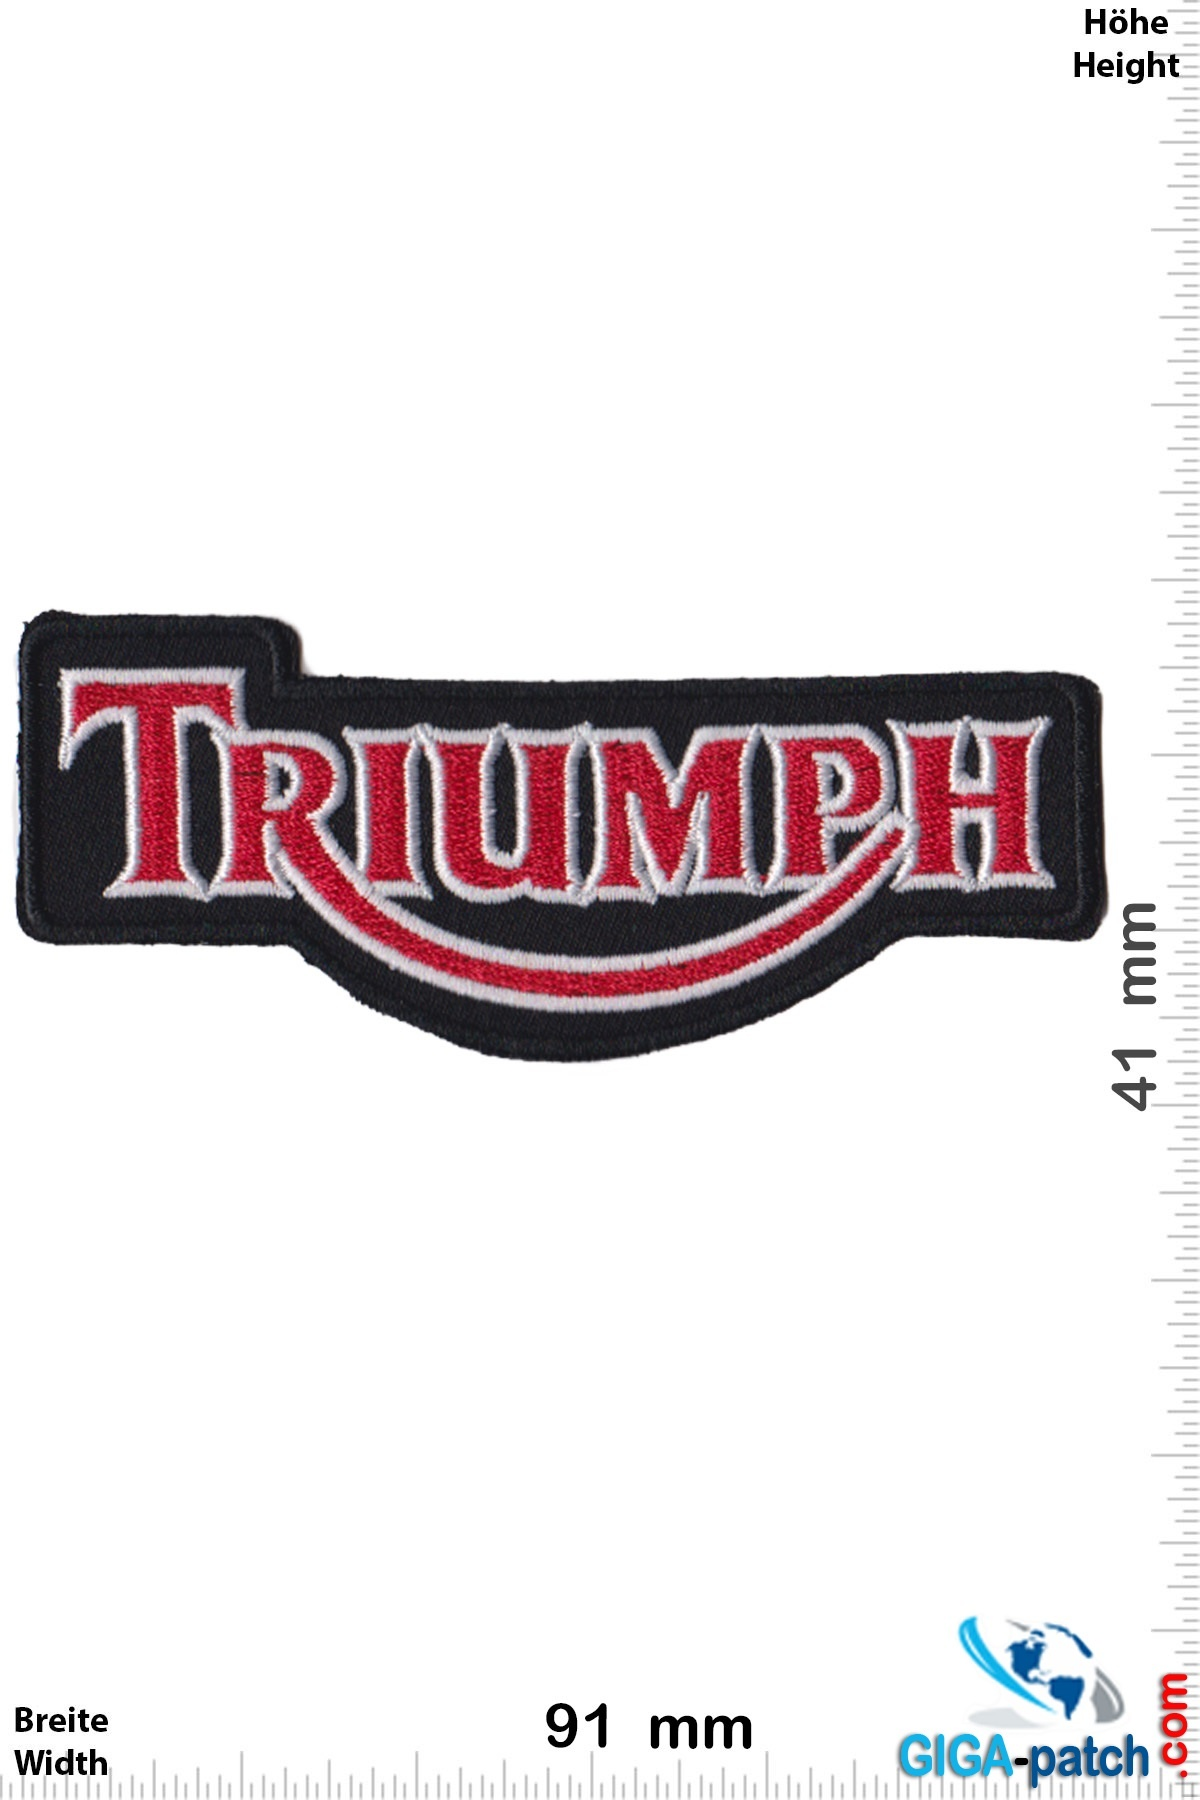 Triumph Triumph - red silver black